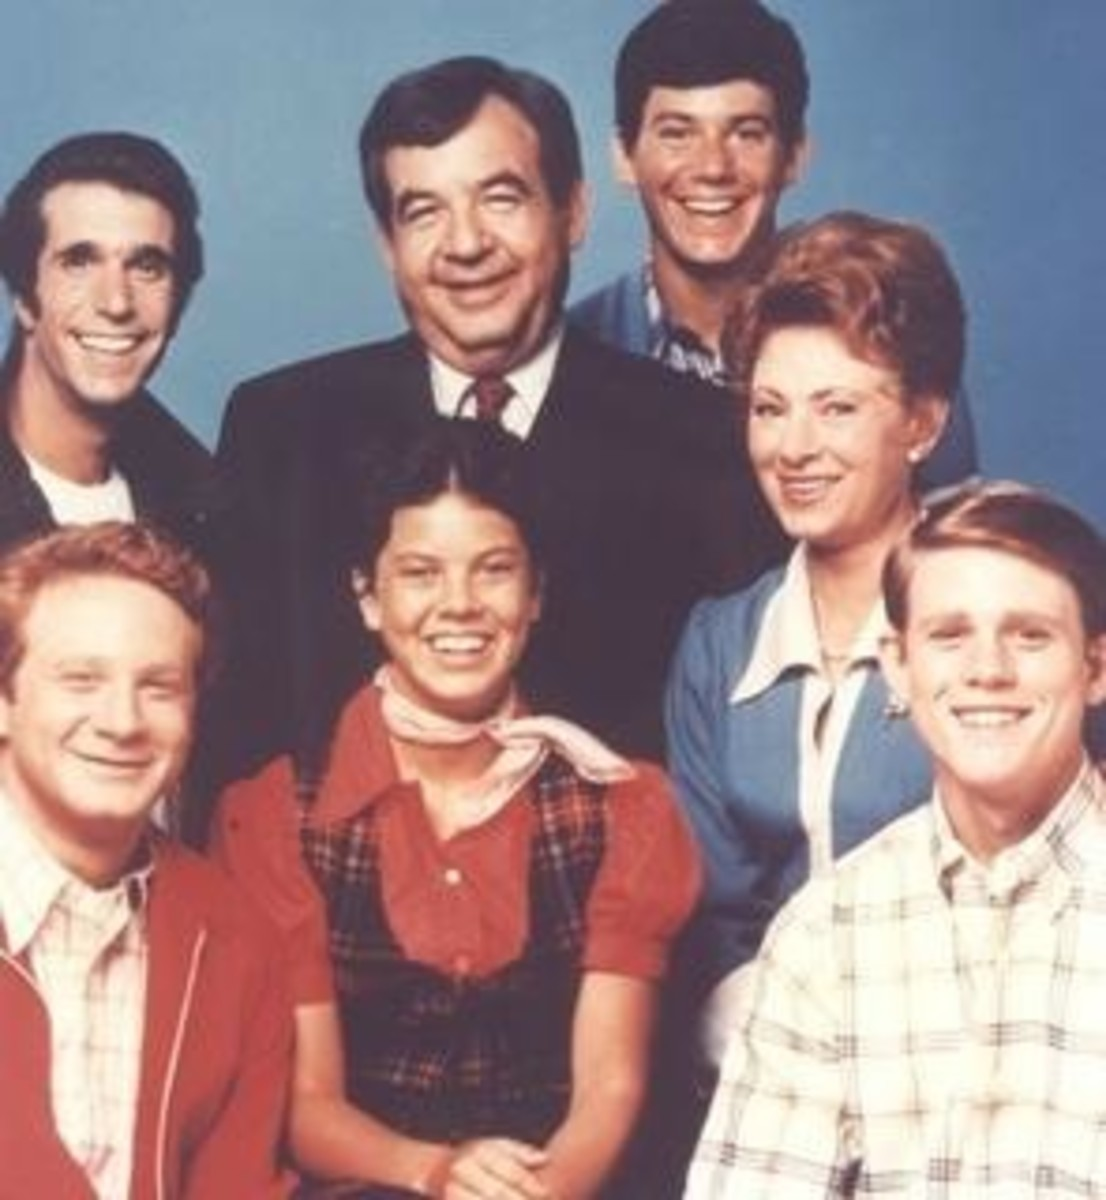 Central Cast of Happy Days